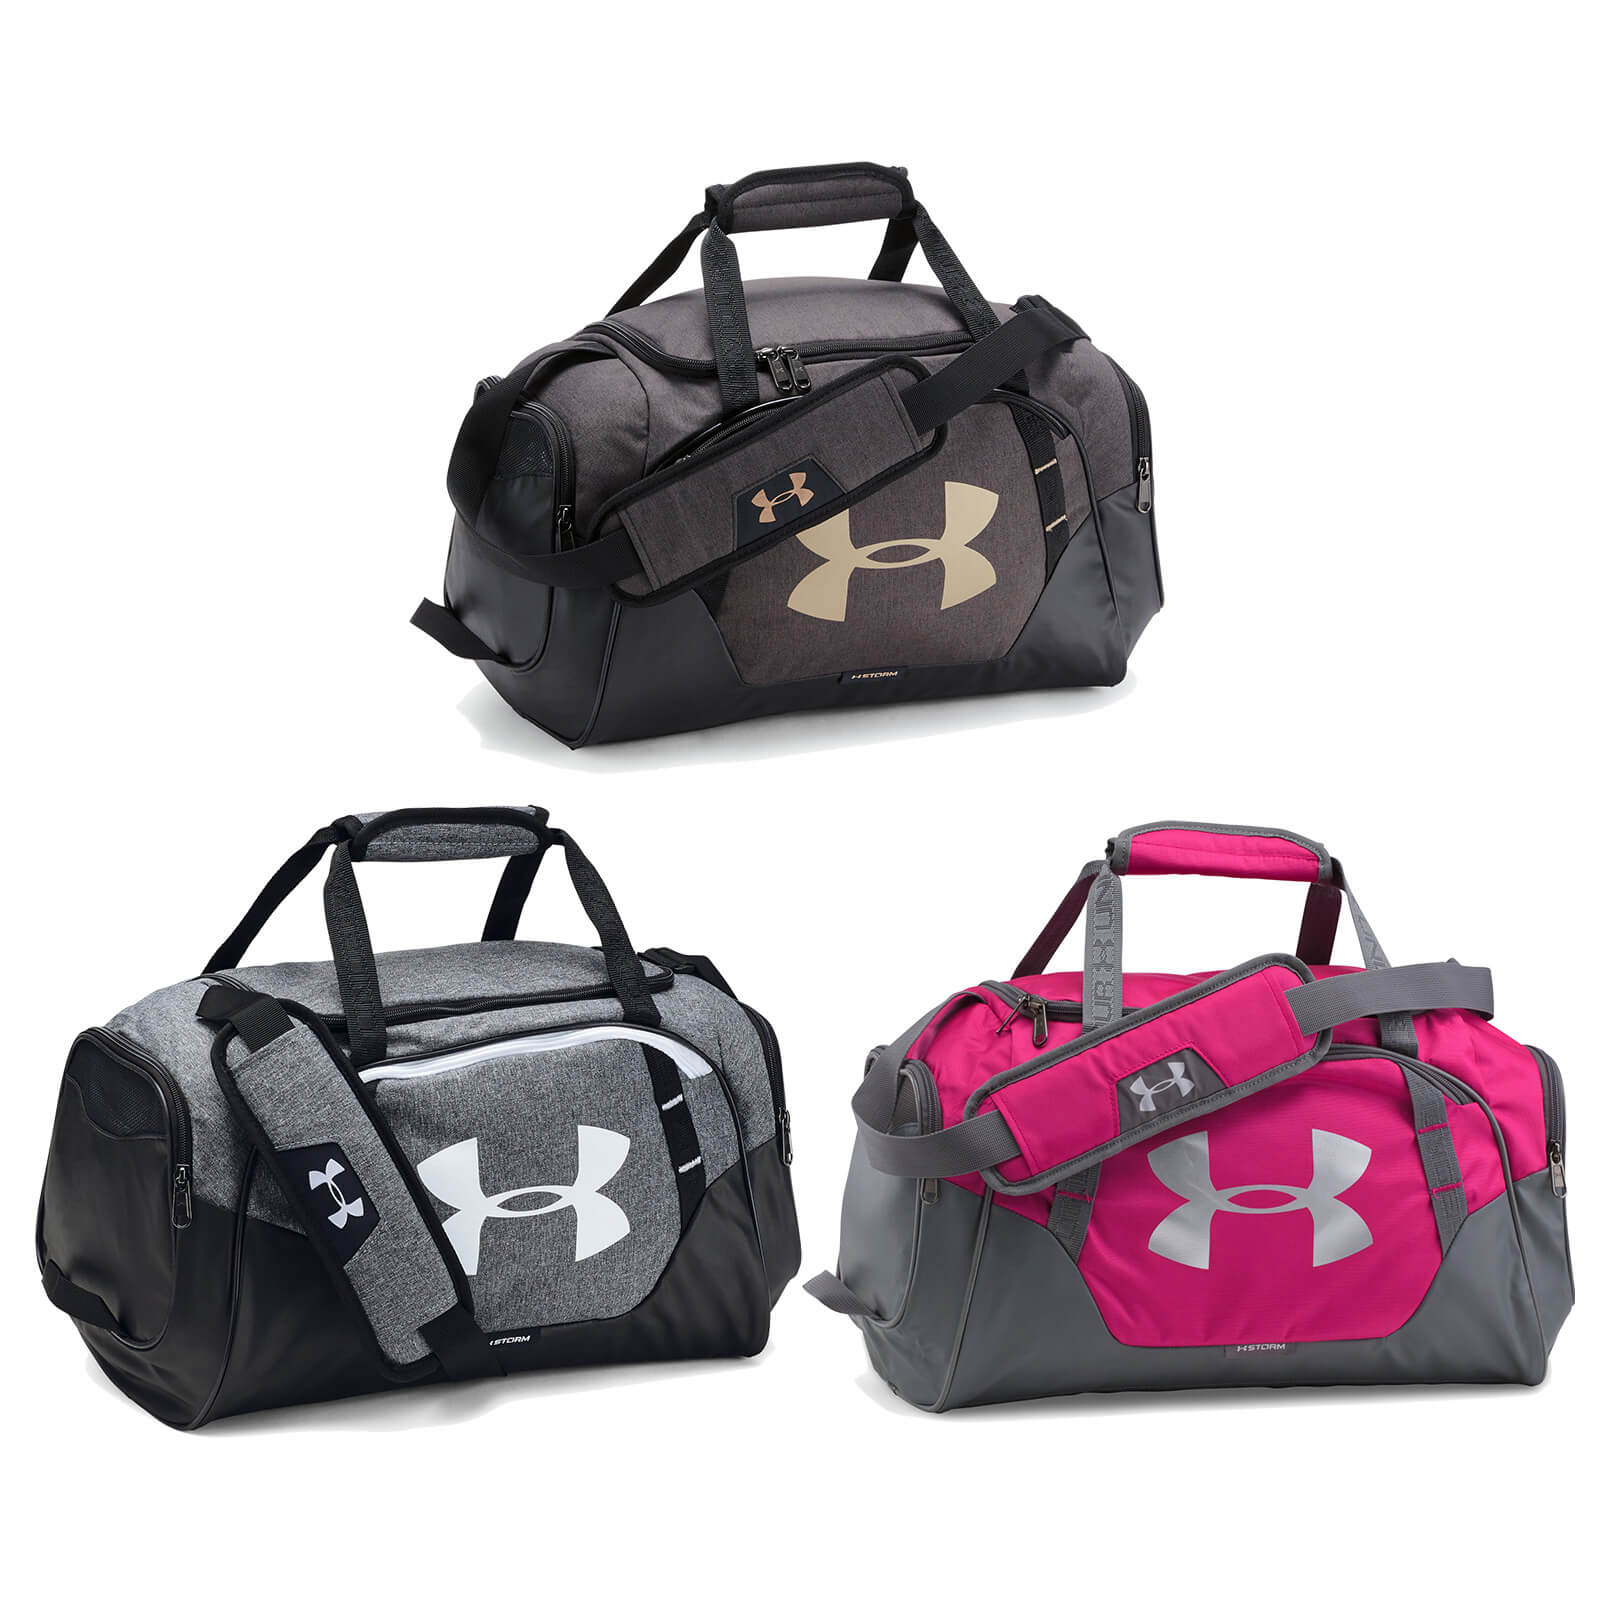 a96cb362cd1 Under Armour Undeniable 3.0 Duffle Bag - Extra Small | ProBikeKit UK